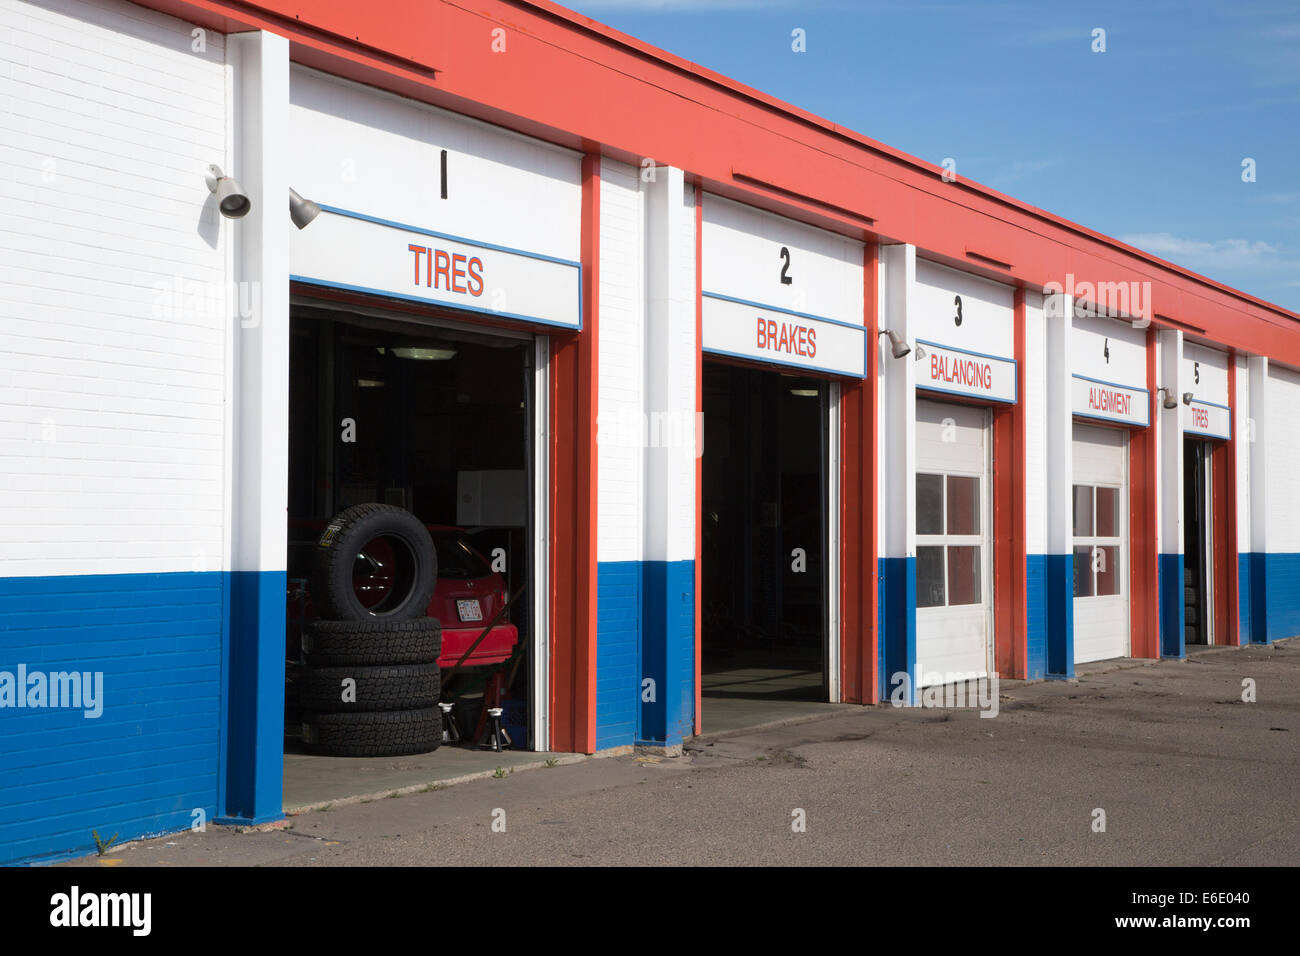 Tire store - Stock Image